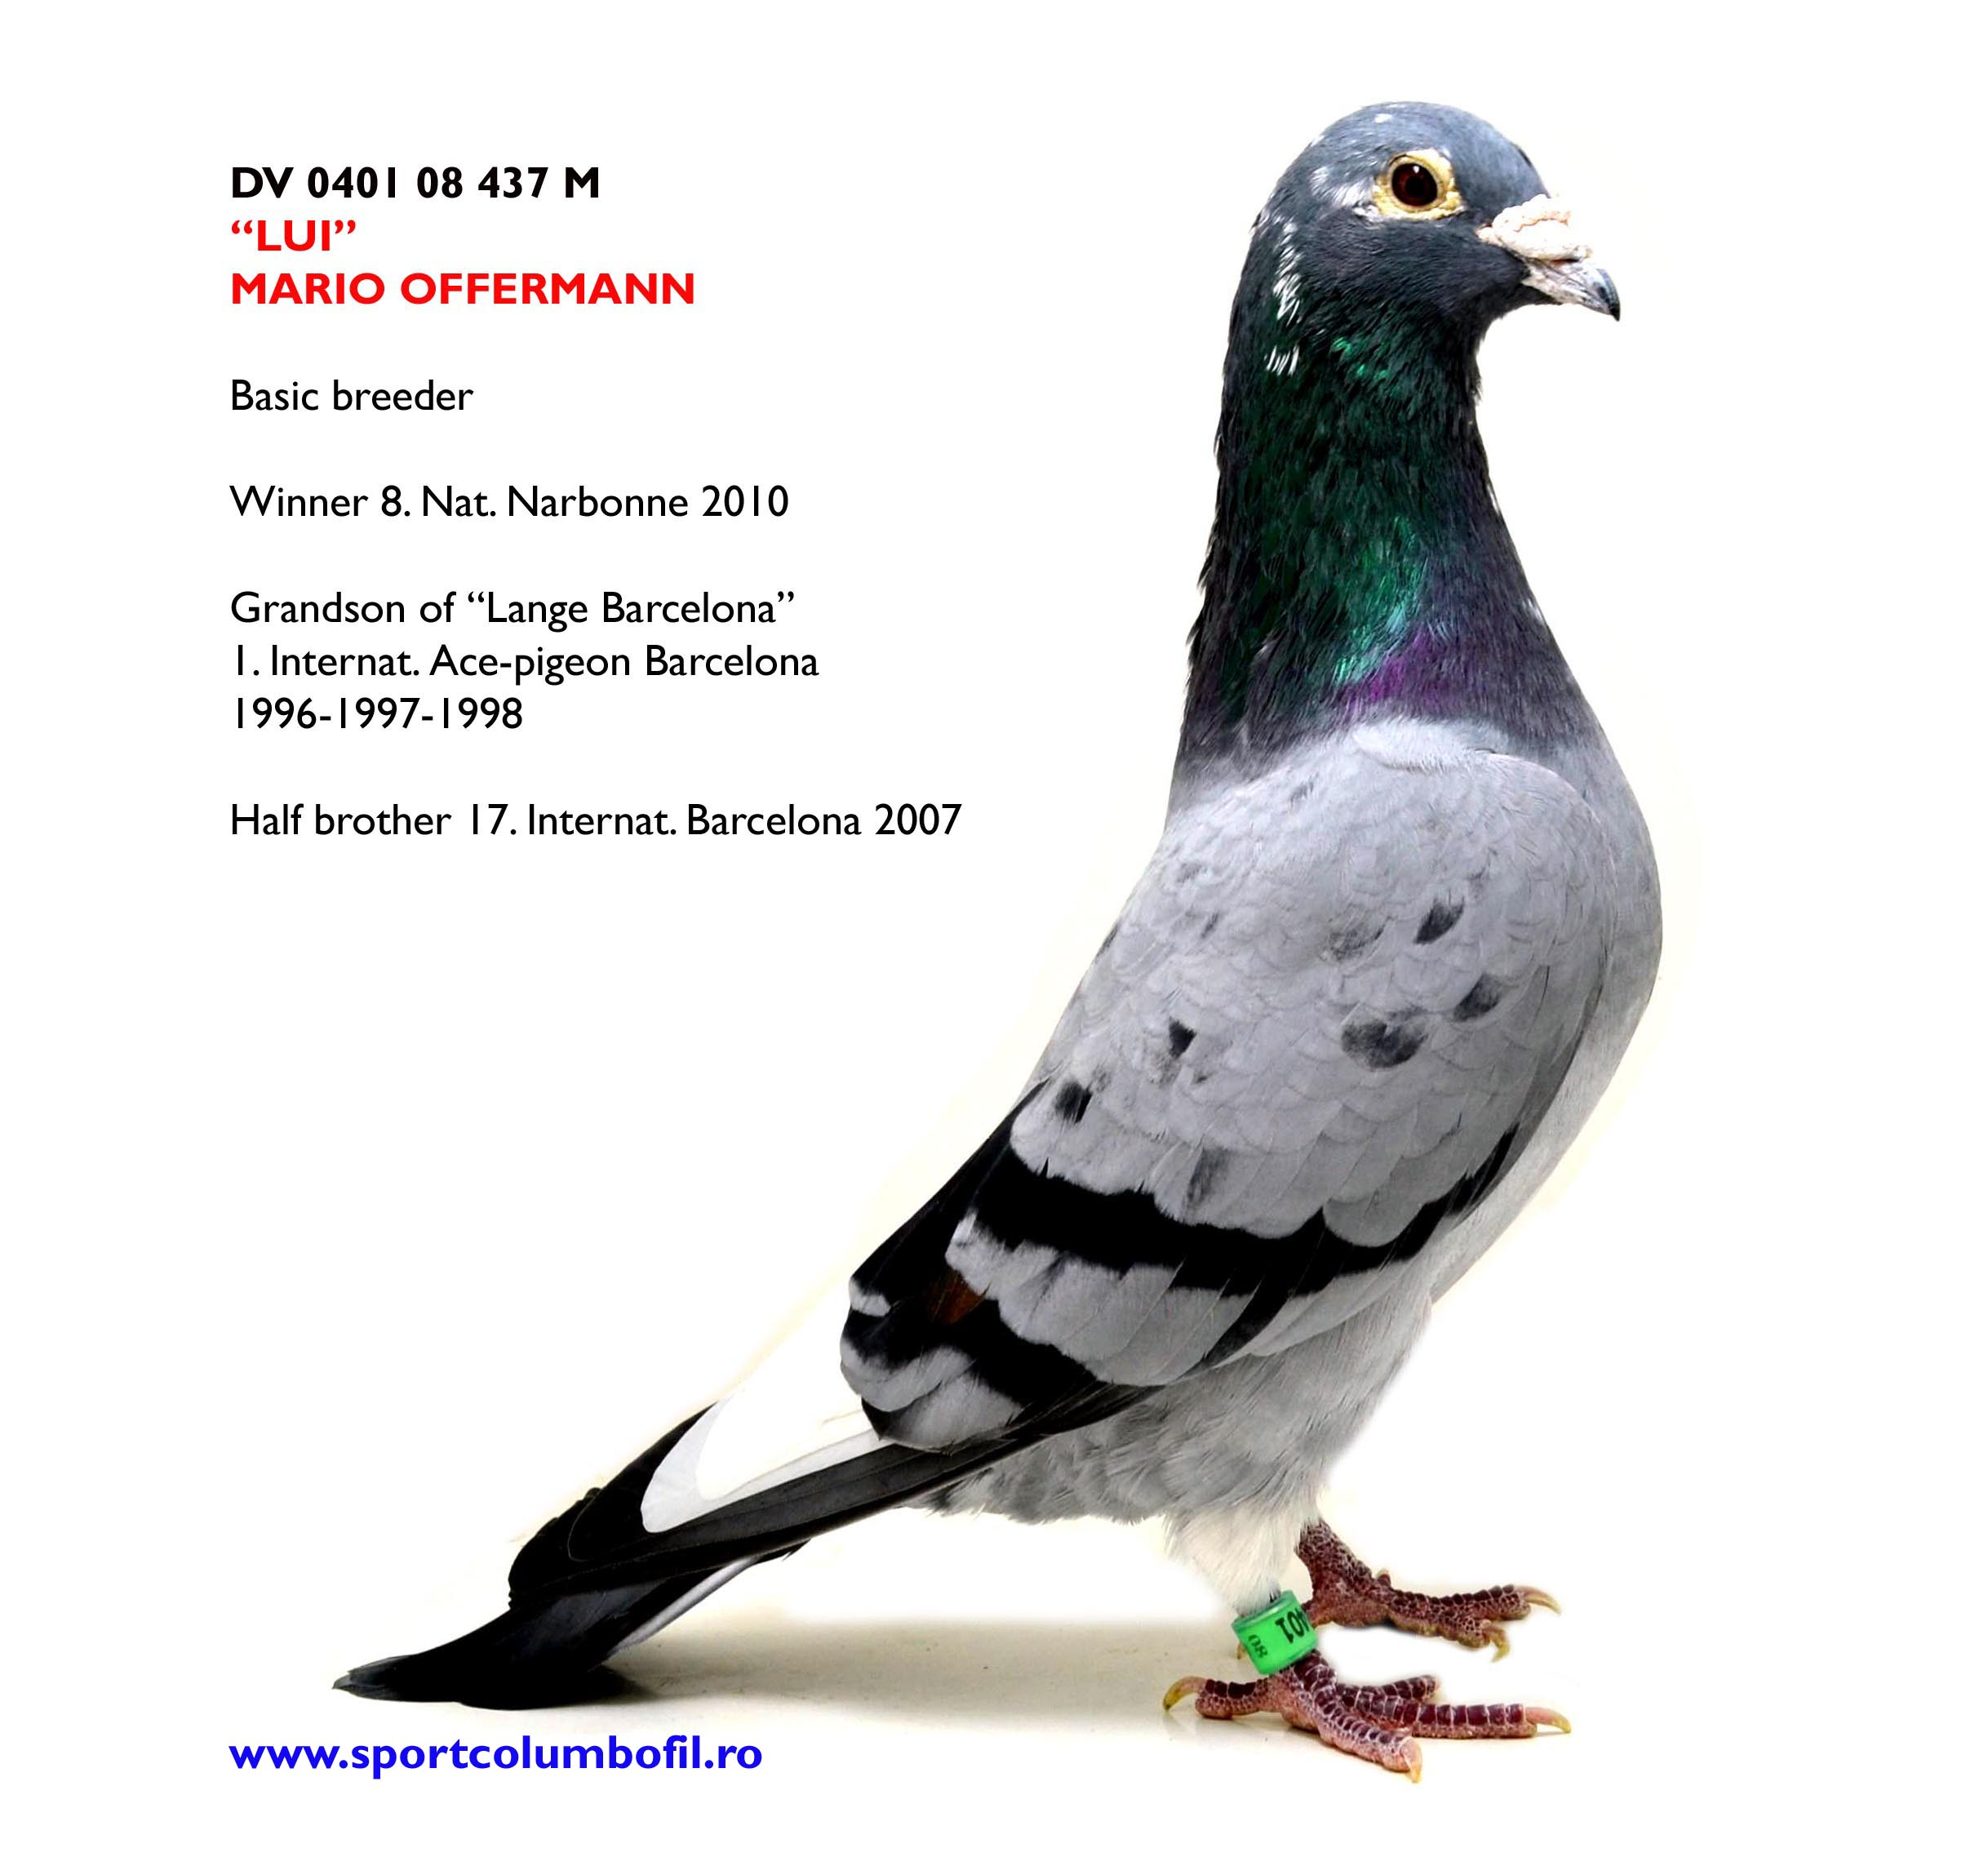 NL 14 1354635 F DIE HEXE - 3 Prov Ace pigeon Great Long Distance Yl; daughter LUI x 150